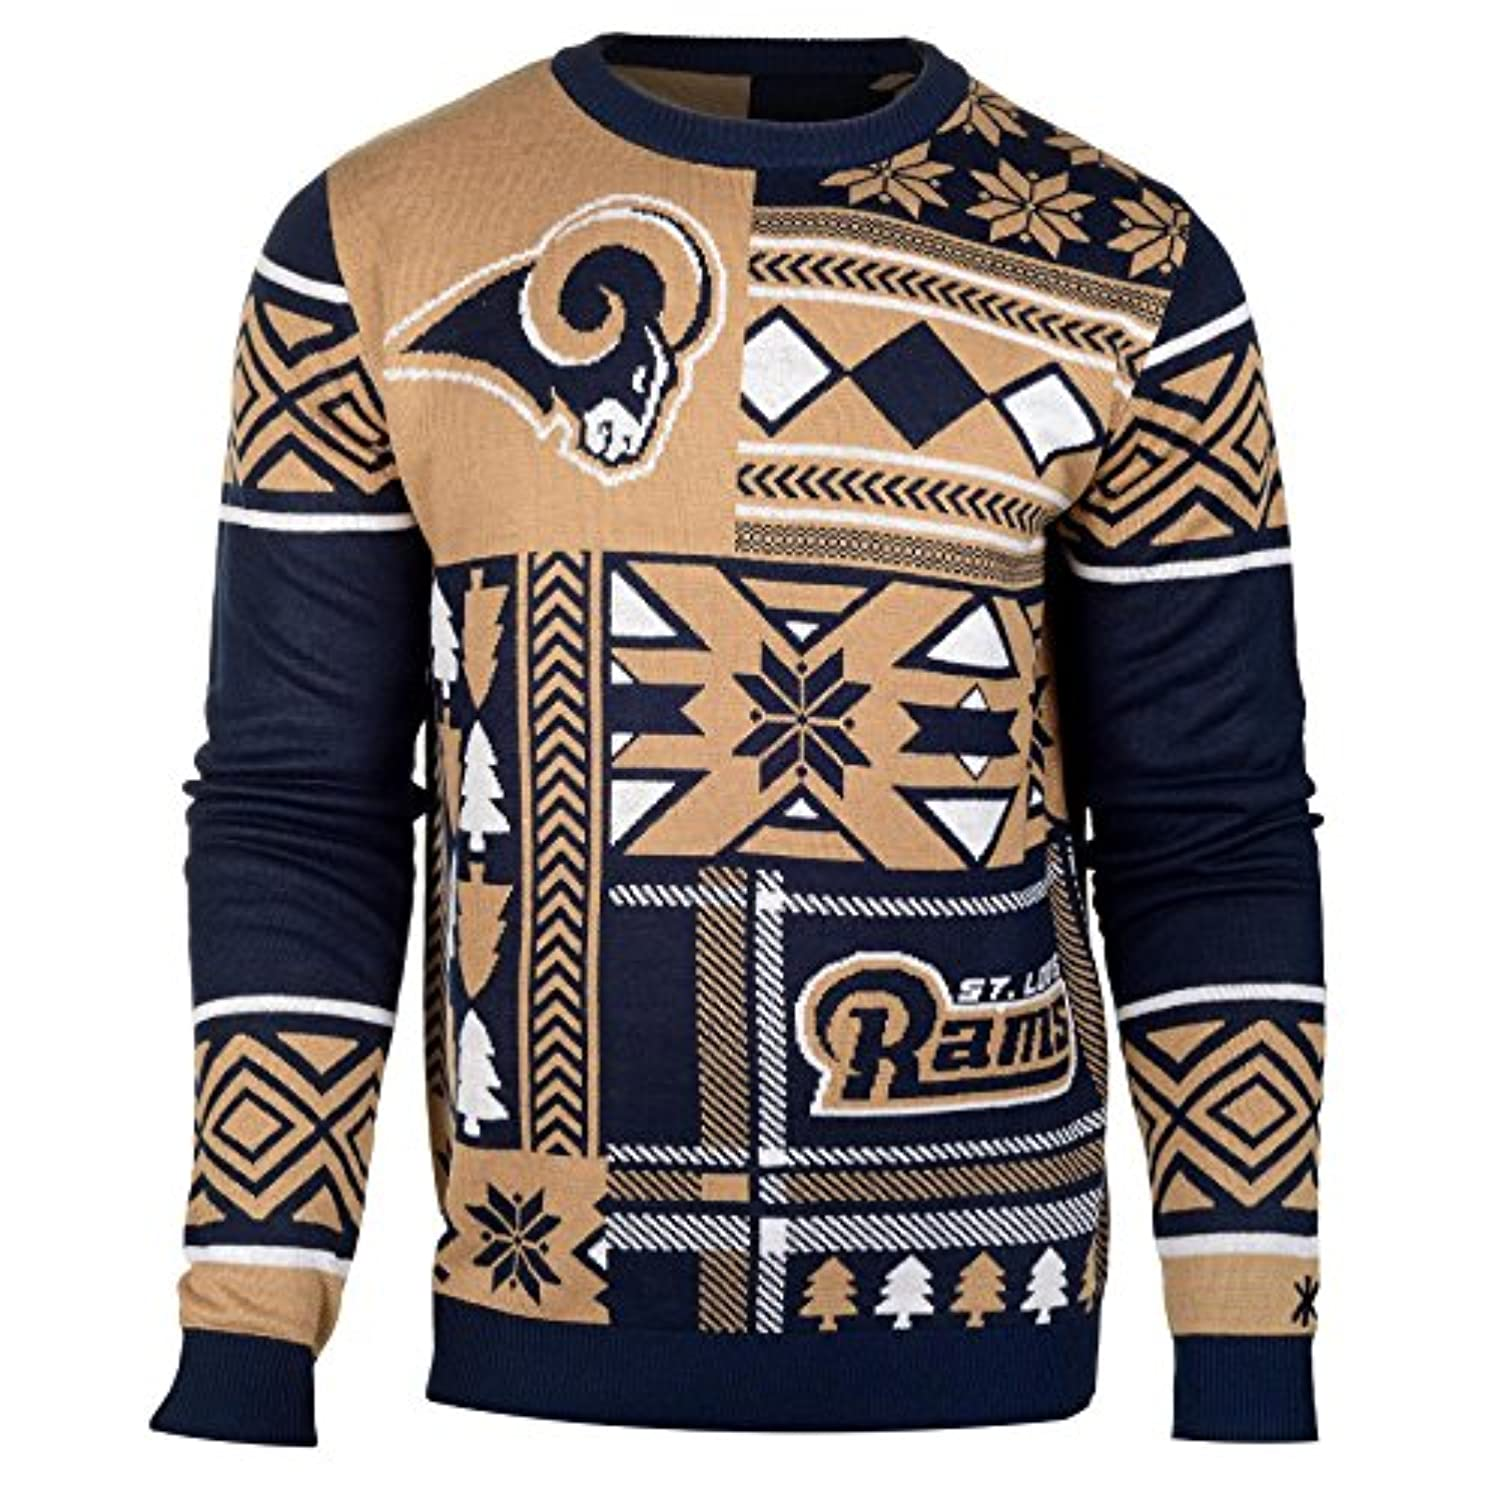 NFL Patches UGLY sweater- Pickチーム M ブルー